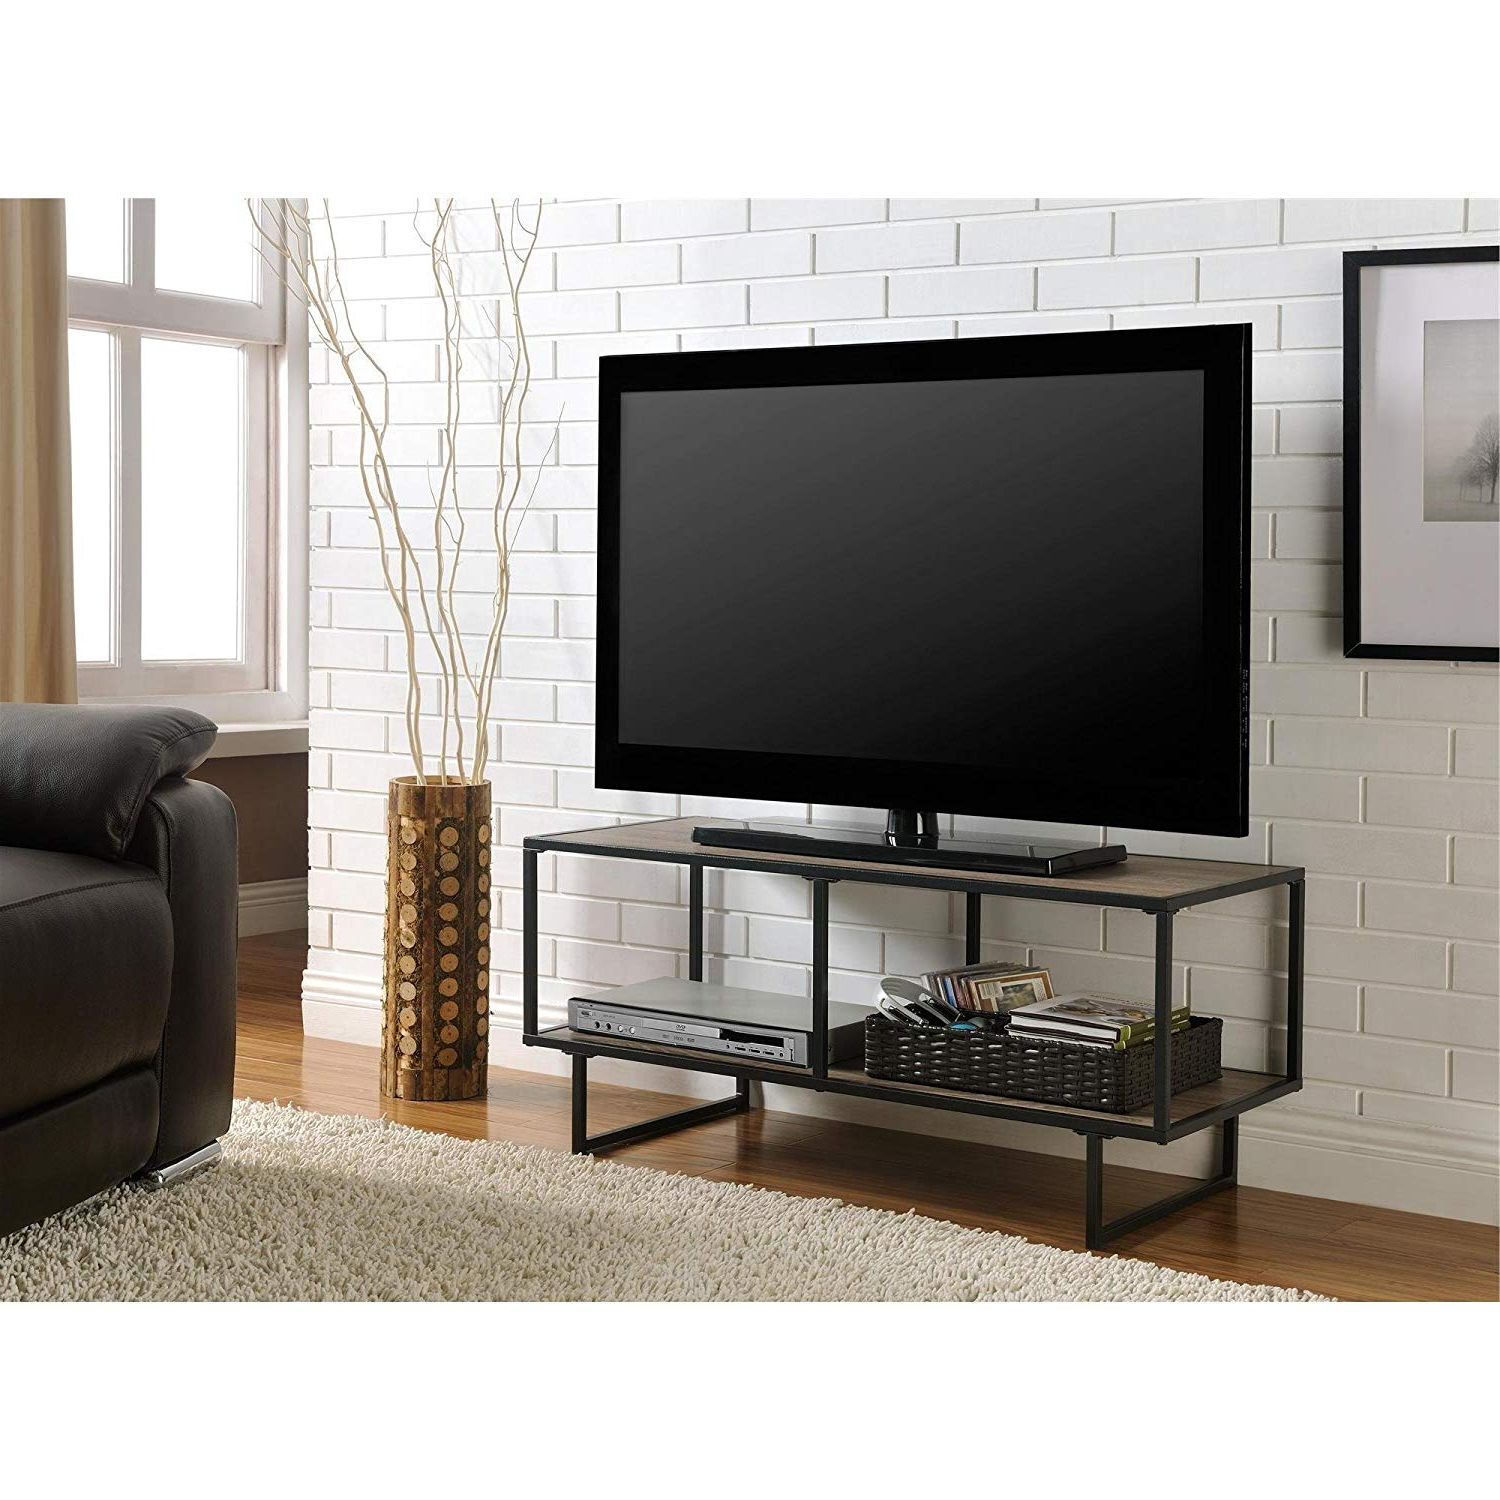 Best And Newest Amazon: Metro Shop Emmett Gunmetal Grey Tv Stand Sonoma Oak With Wyatt 68 Inch Tv Stands (View 2 of 20)